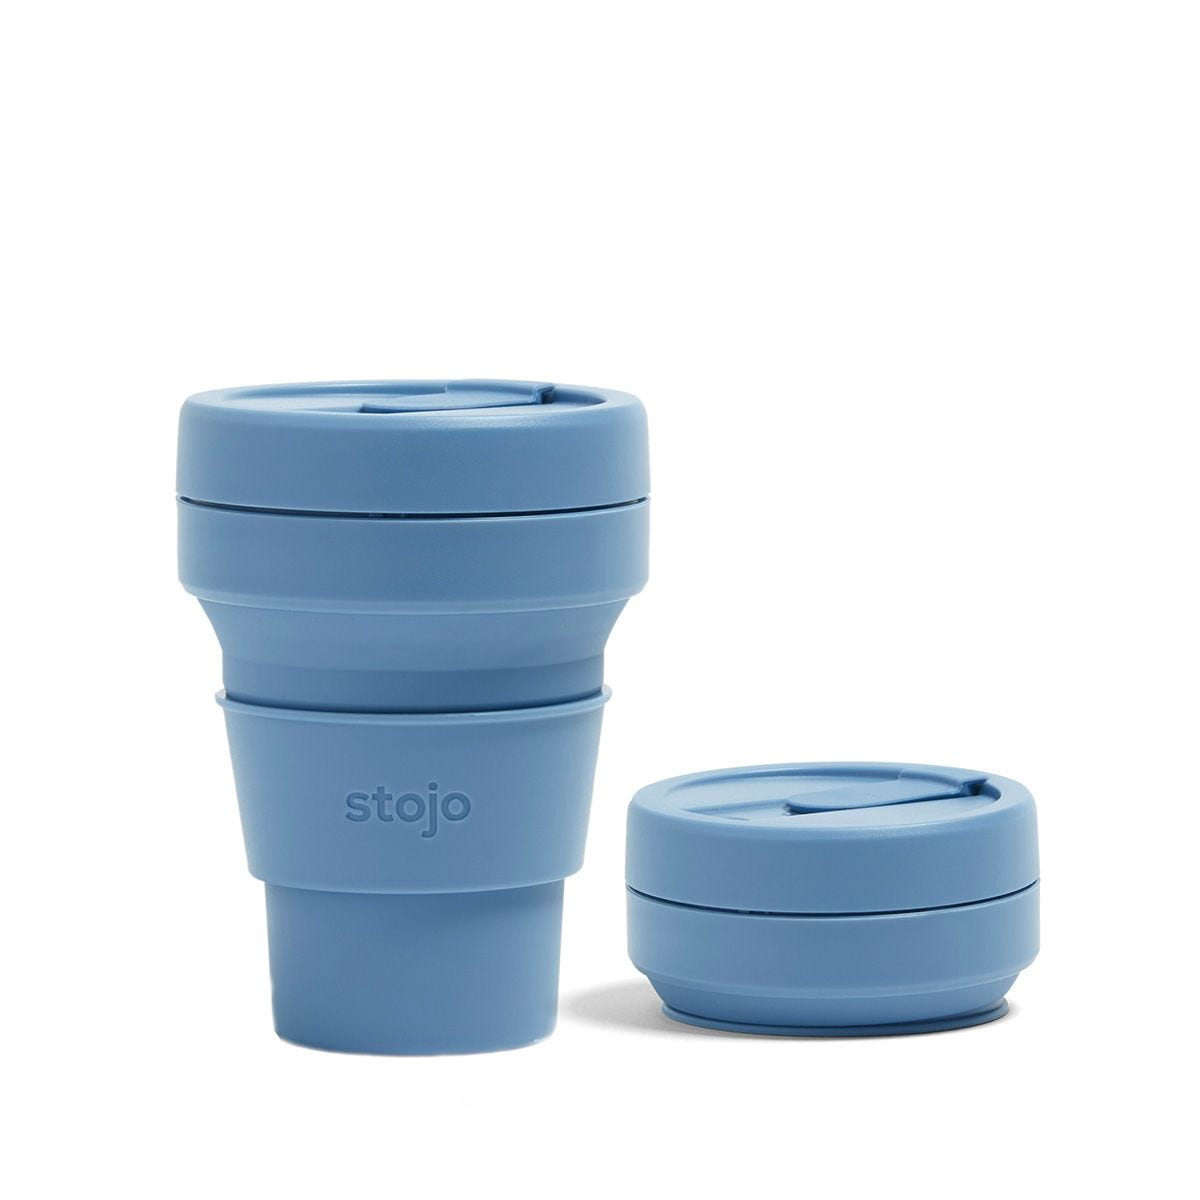 Stojo Collapsible Pocket Cup 12oz - Steel Blue